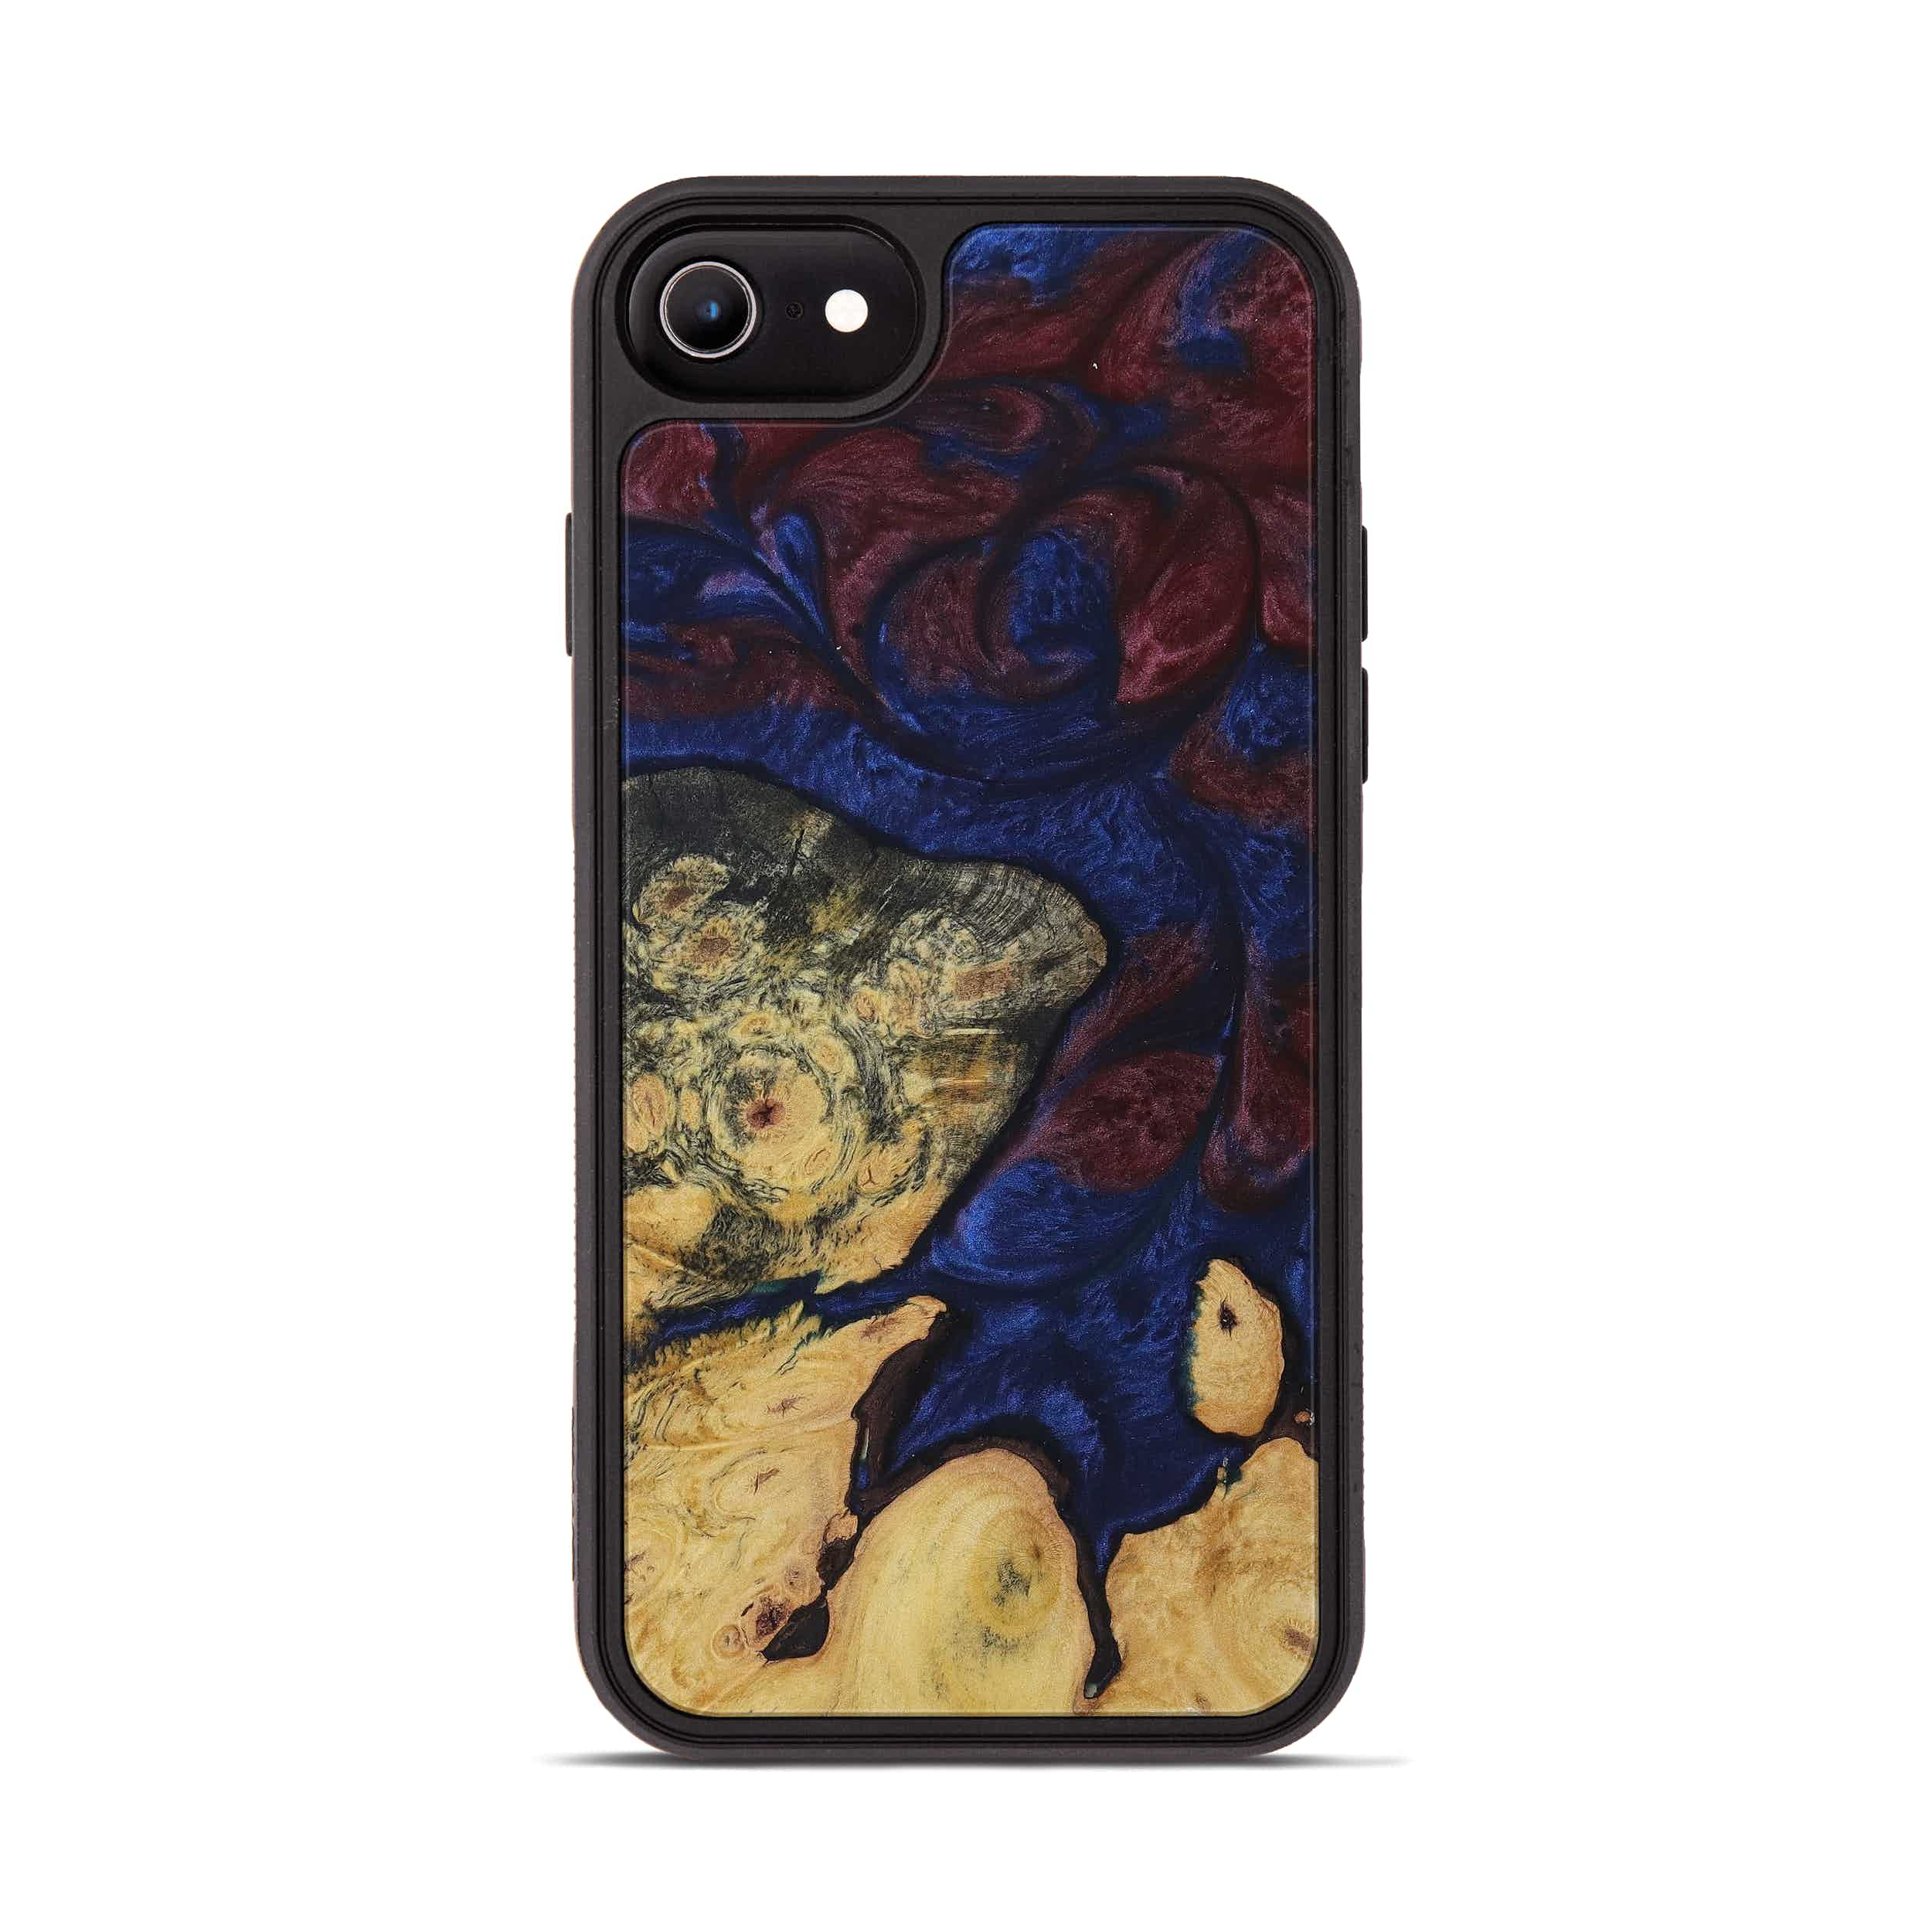 iPhone 8 Wood+Resin Phone Case - Prudy (Blue & Red, 394781)